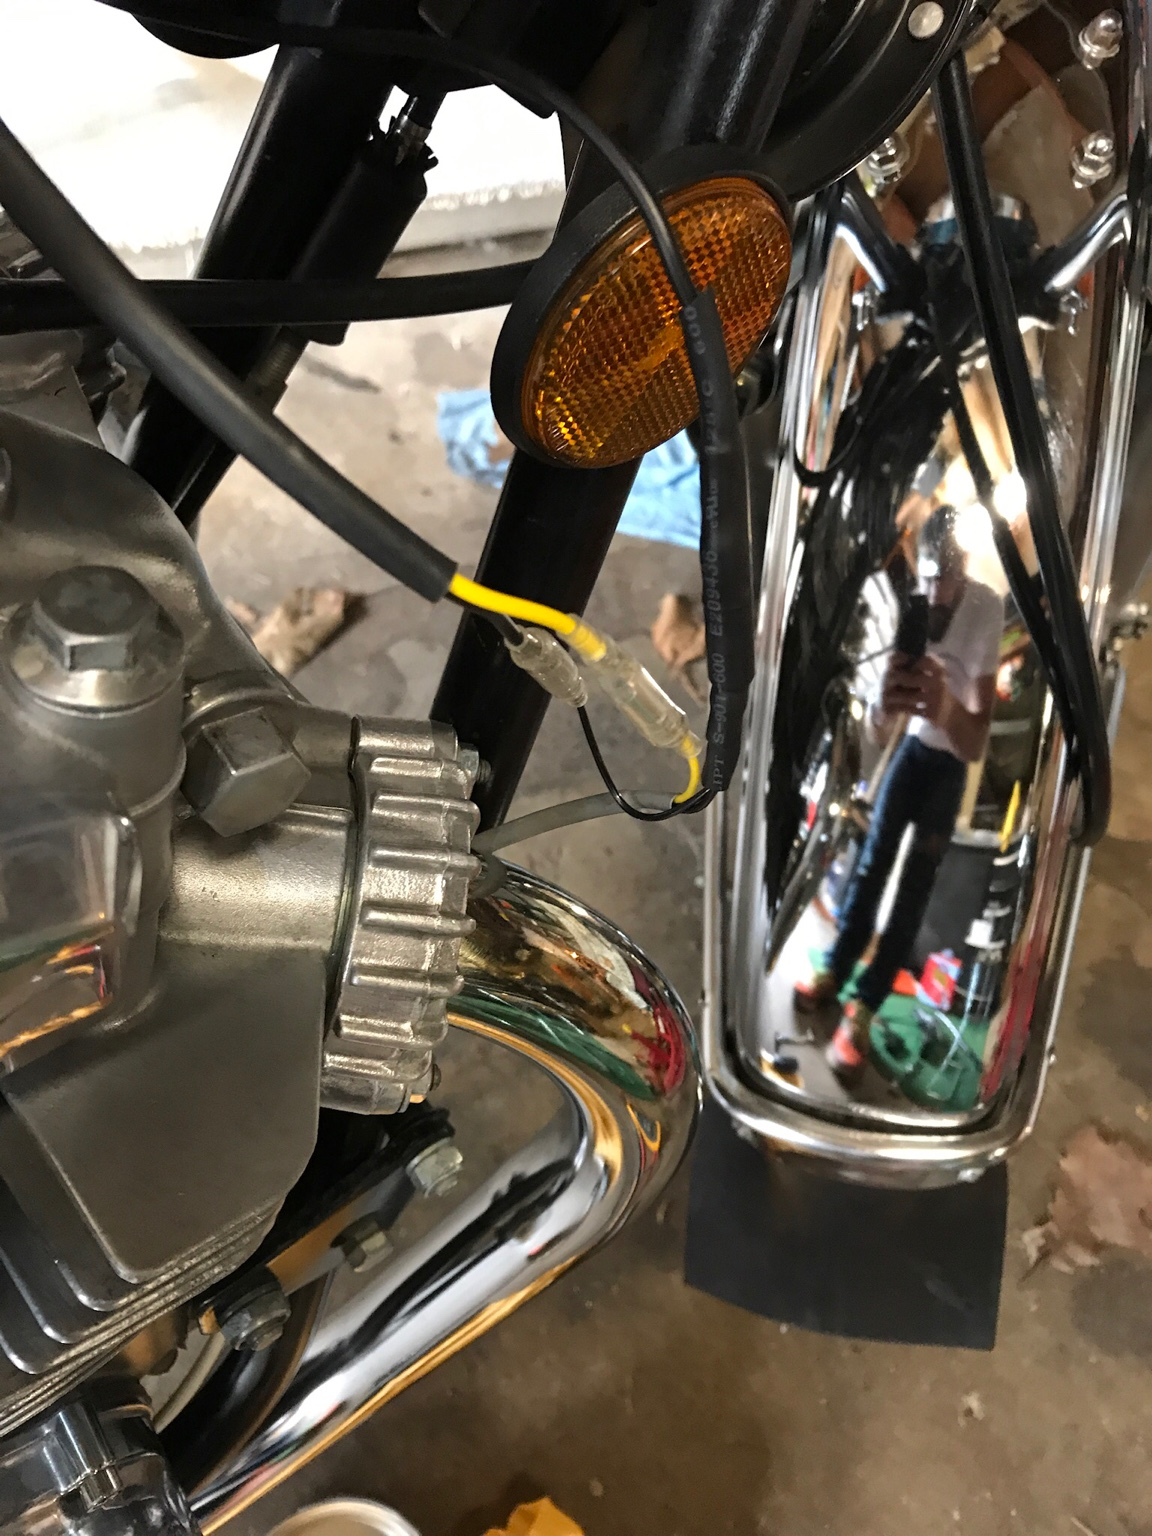 Charlies Place Ignition On Kz400 Full Write Up Kz440 Wiring Harness Make With The Is To Extend Black Male About 8 10 Reach Yellow Wire I Assume If Youve Gotten This Far You